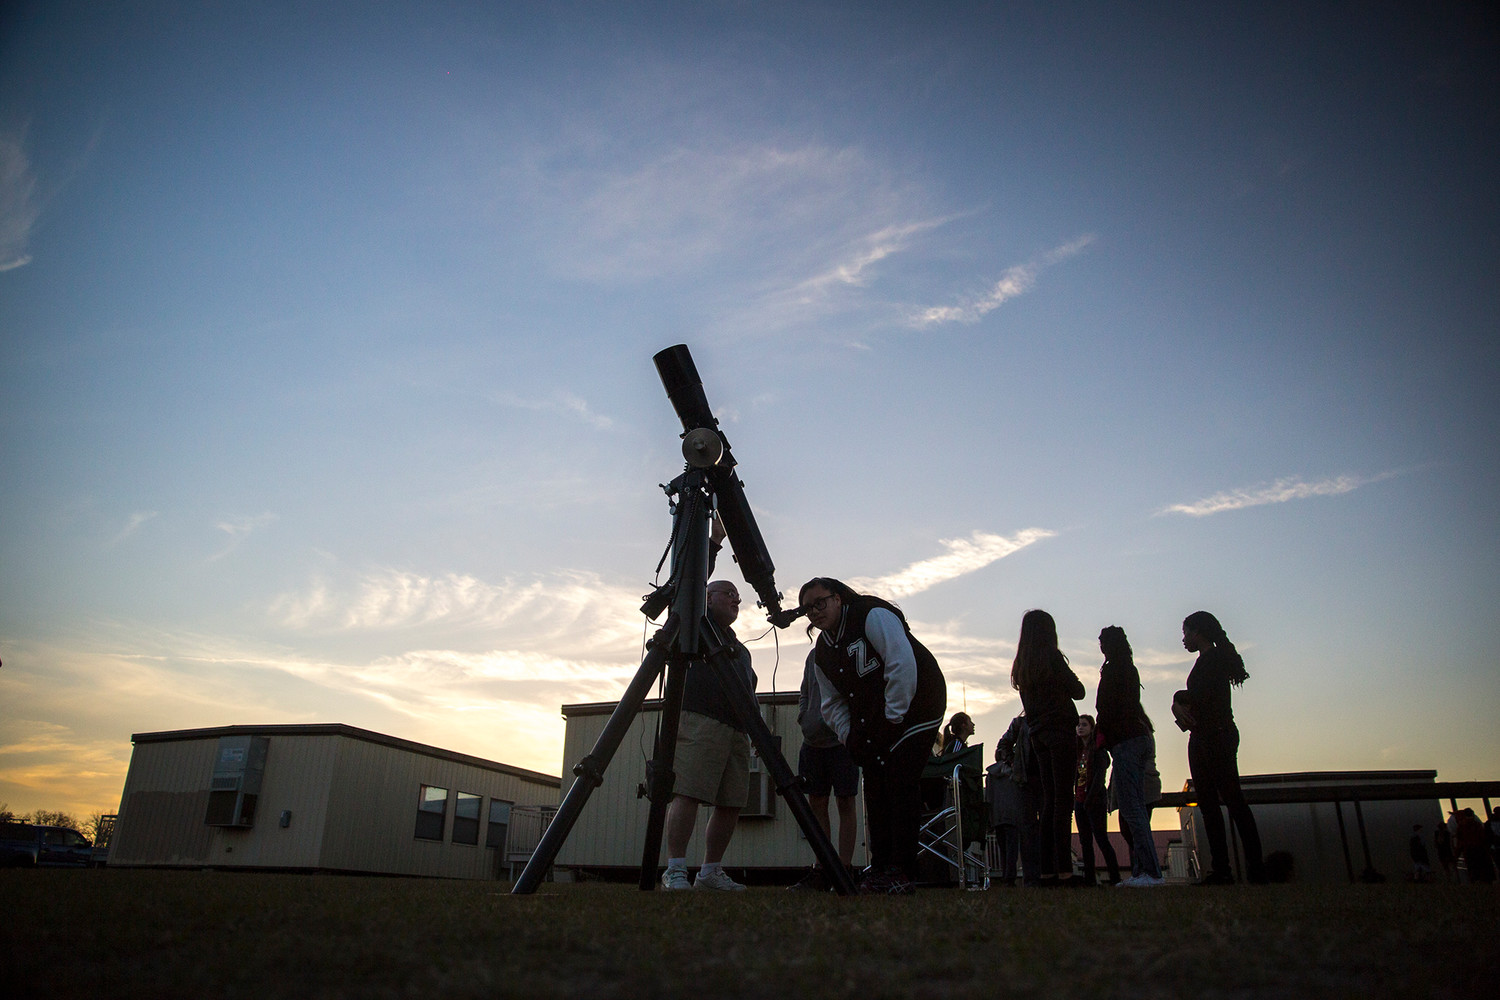 Participants in the first Starlight Night at Lake Asbury Junior High School looked through a variety of telescopes provided by the Northeast Florida Astronomical Society.